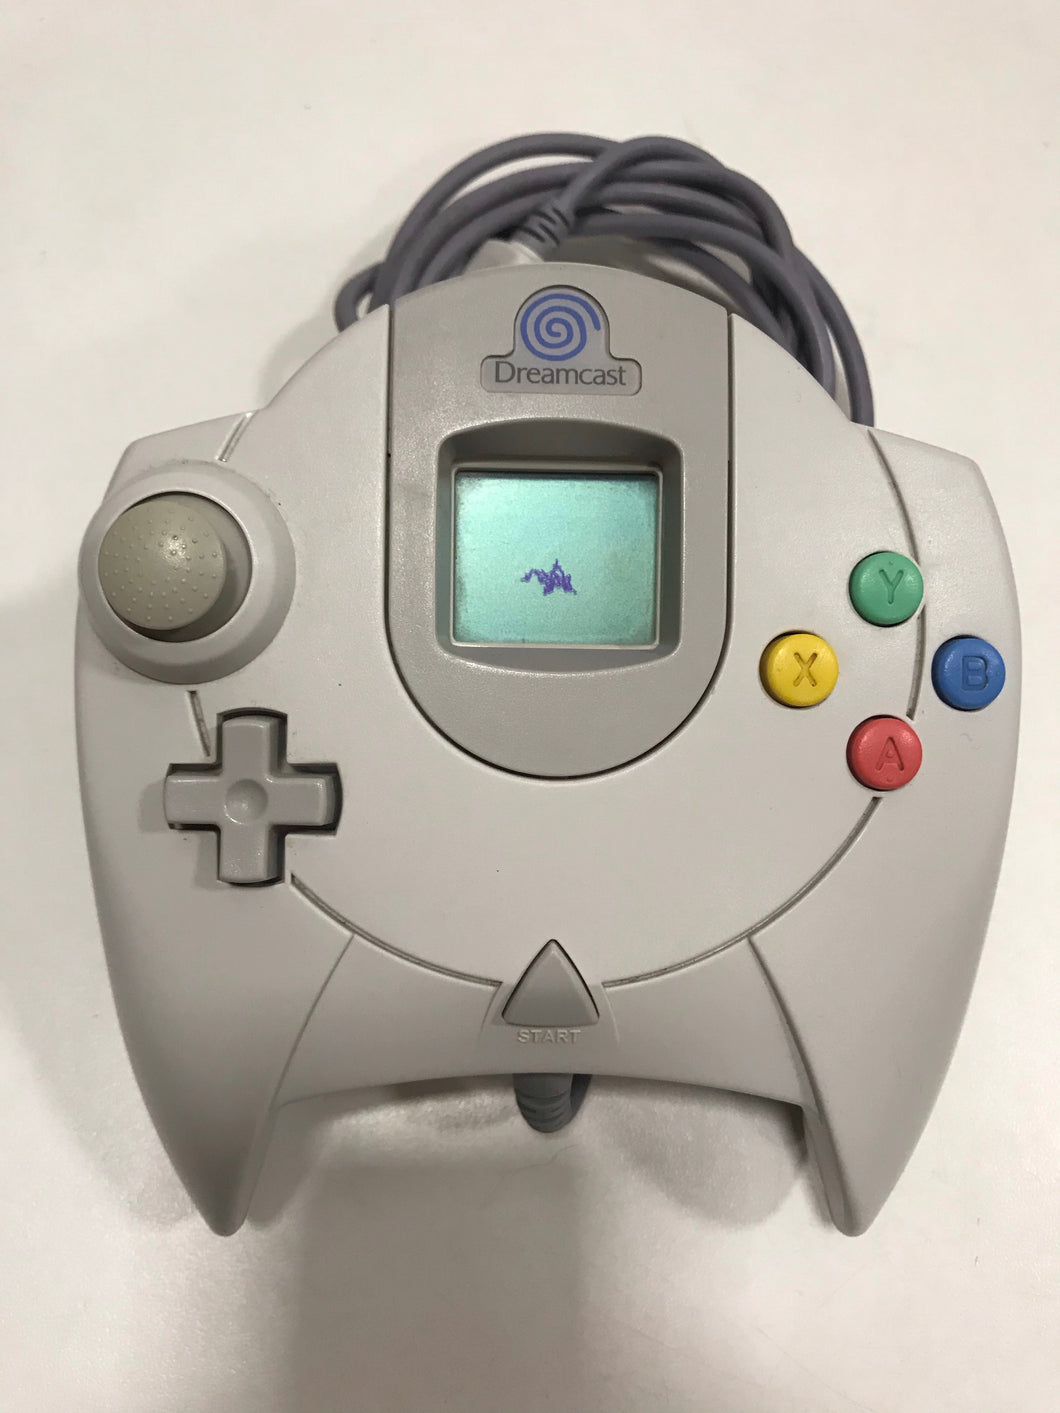 manette sega dreamcast officielle + carte mémoire vmu officielle